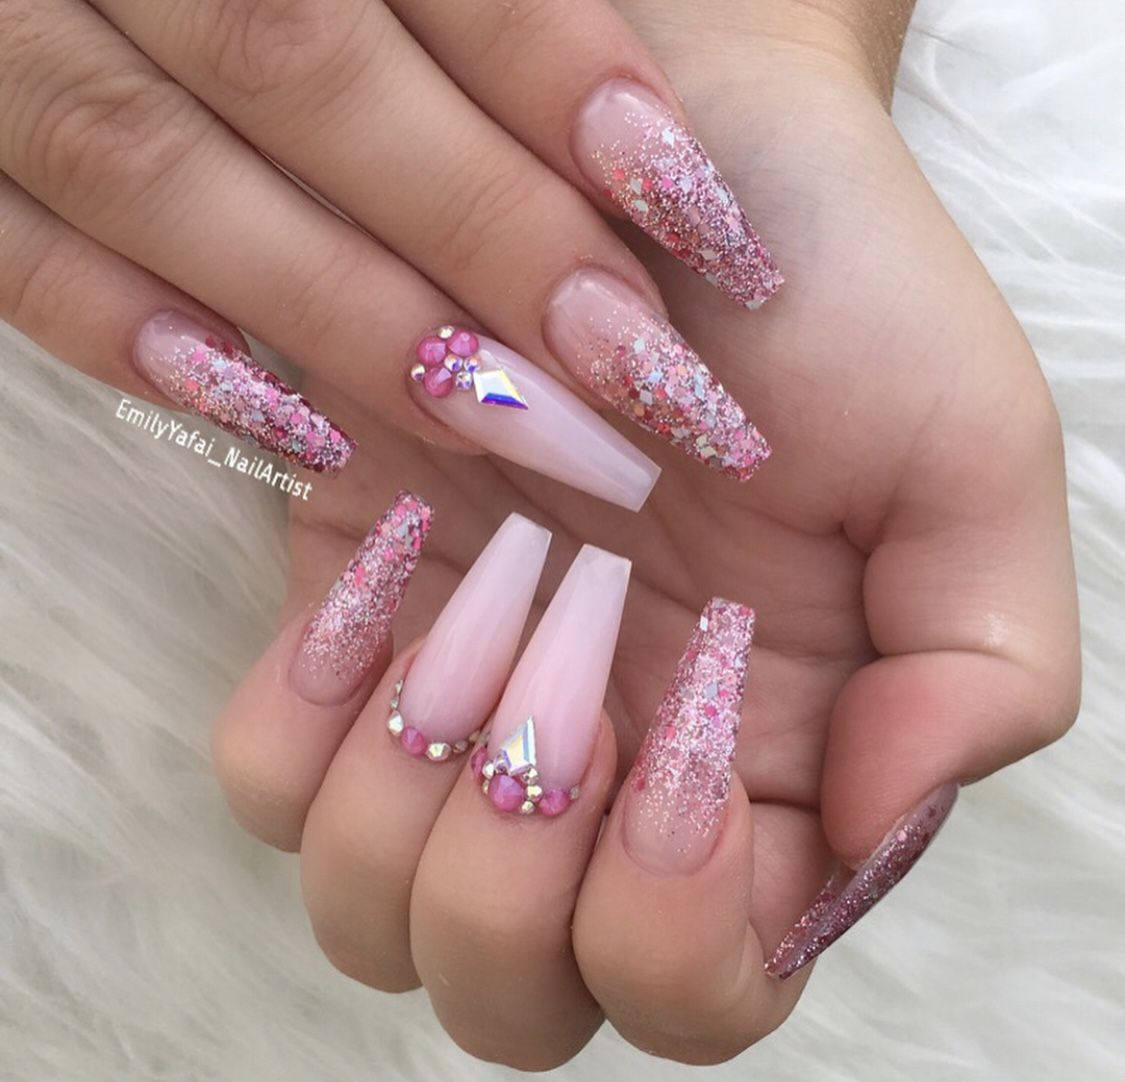 Pin By Christine Magda On Nails Pink Acrylic Nails Pink Nail Designs Acrylic Pink Nails